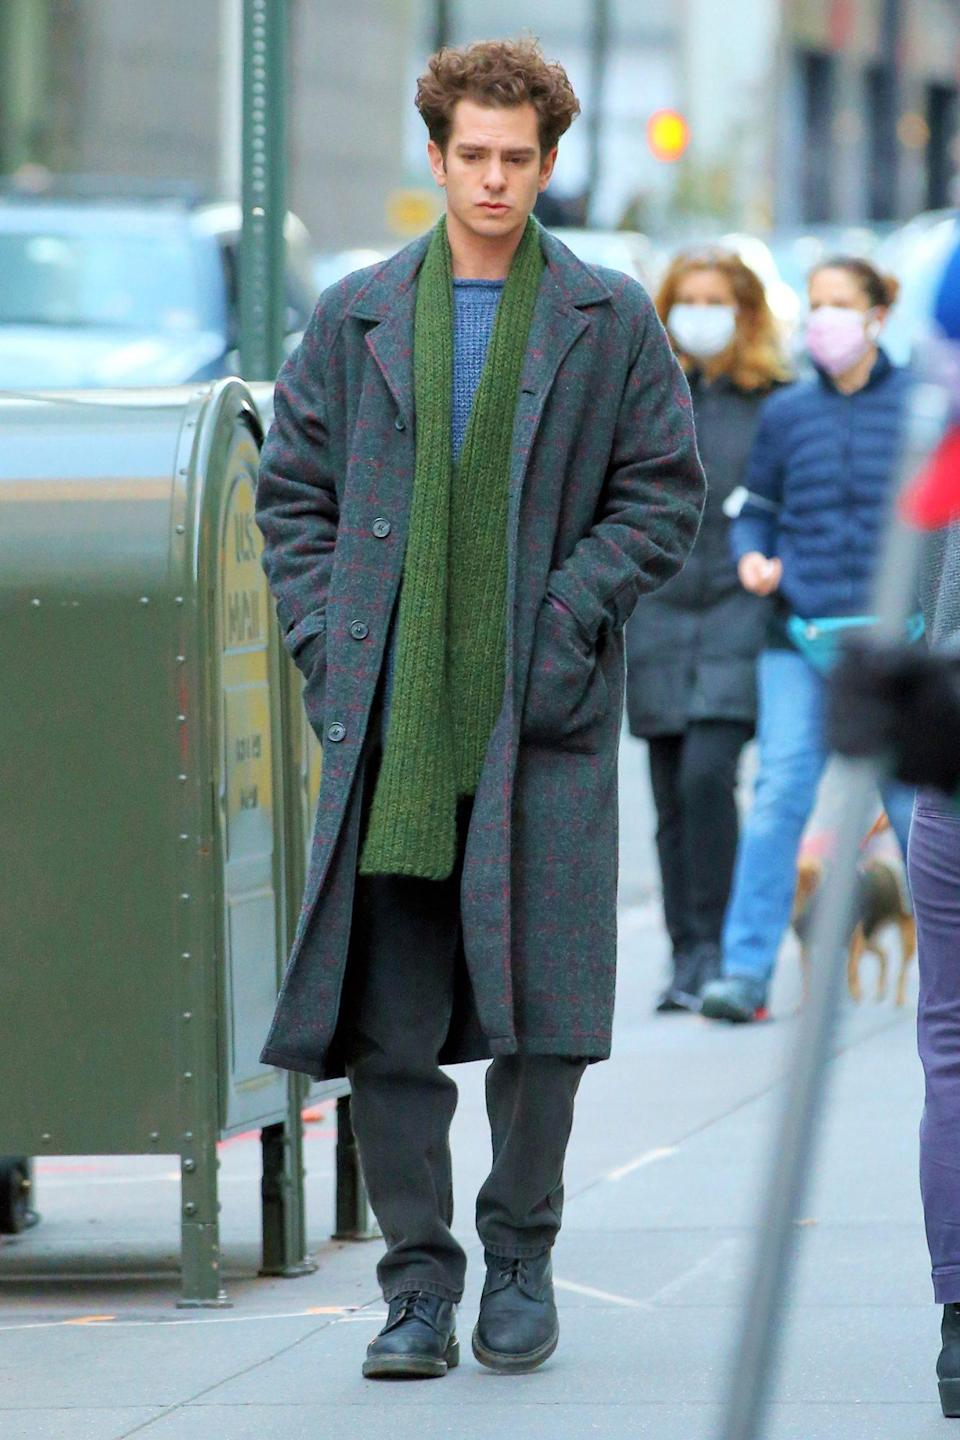 <p>Andrew Garfield is seen in character filming<em> Tick Tick Boom</em> on Monday in N.Y.C.</p>